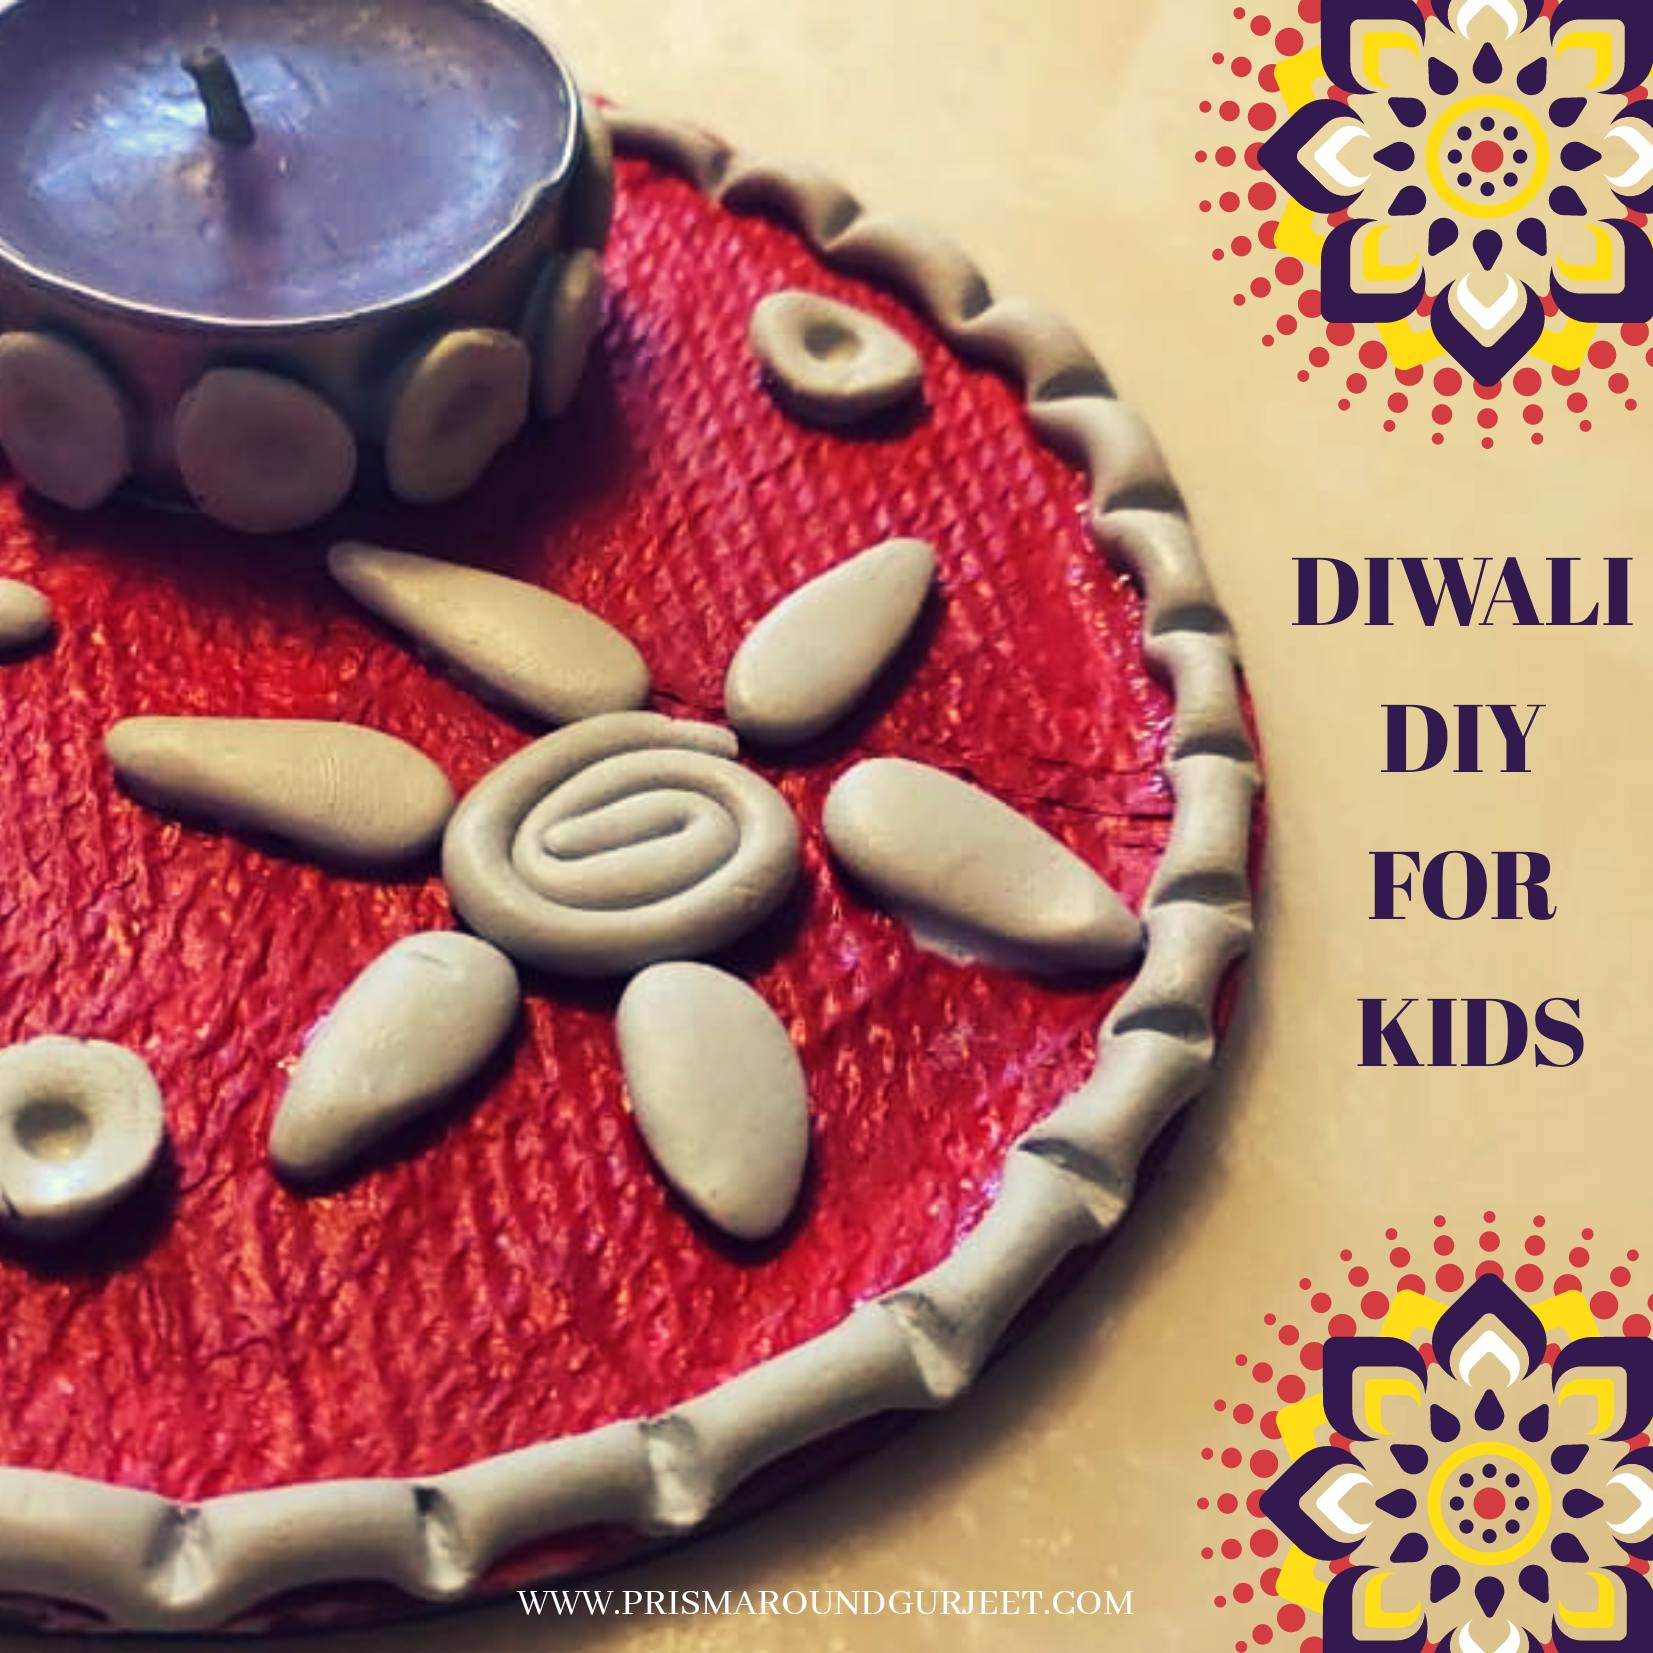 Diwali DIY for kids